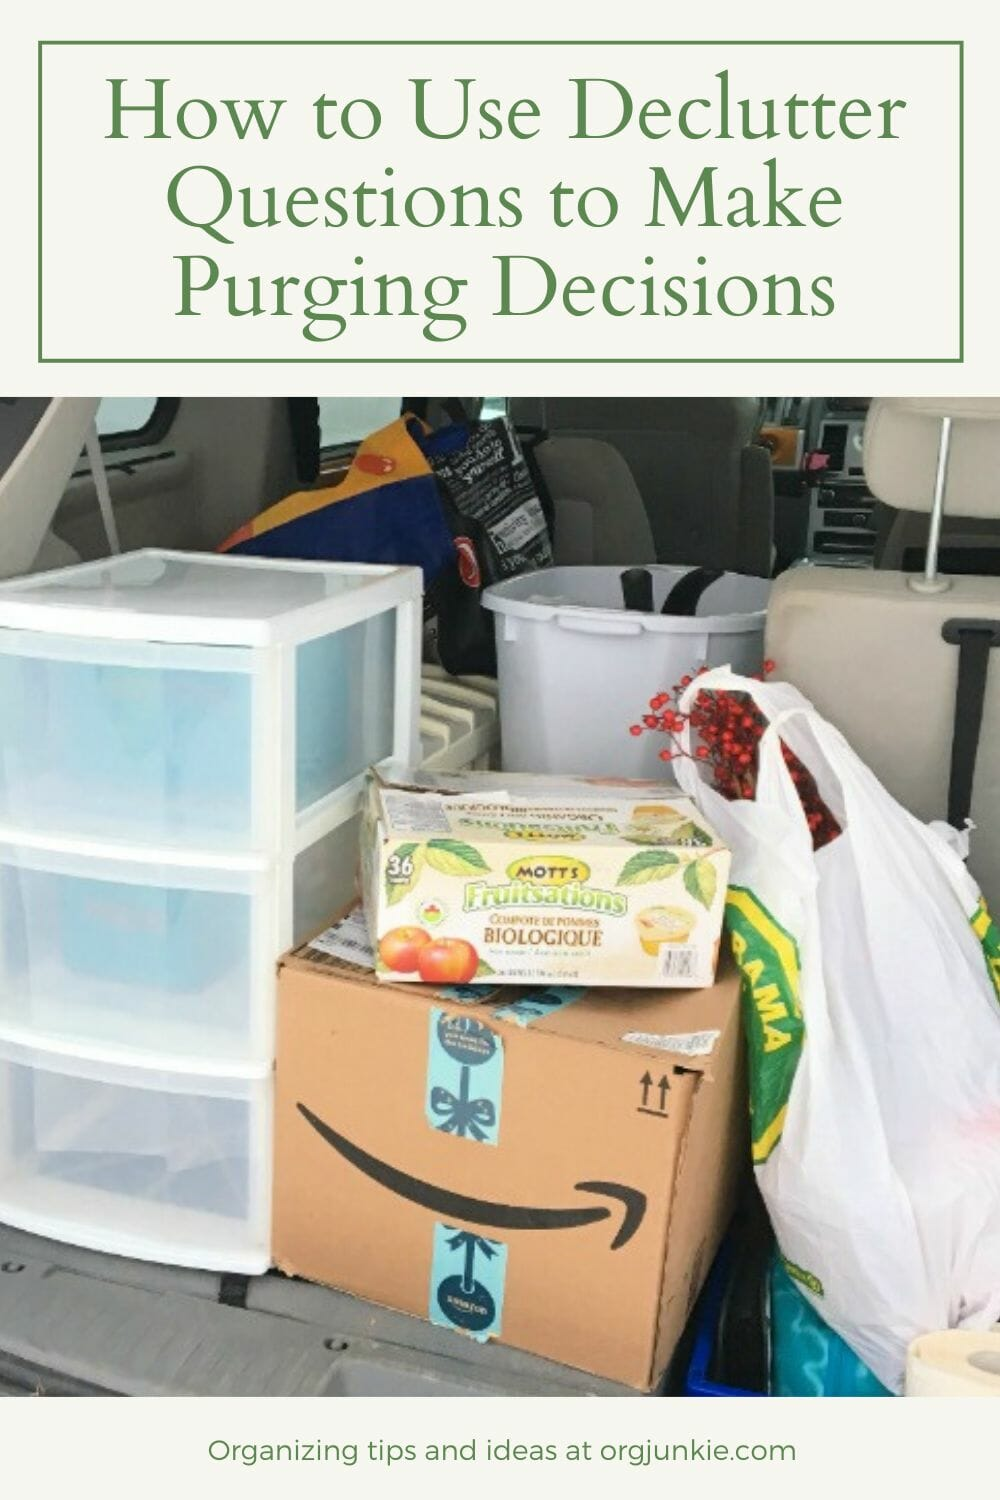 How to Use Declutter Questions to Make Purging Decisions